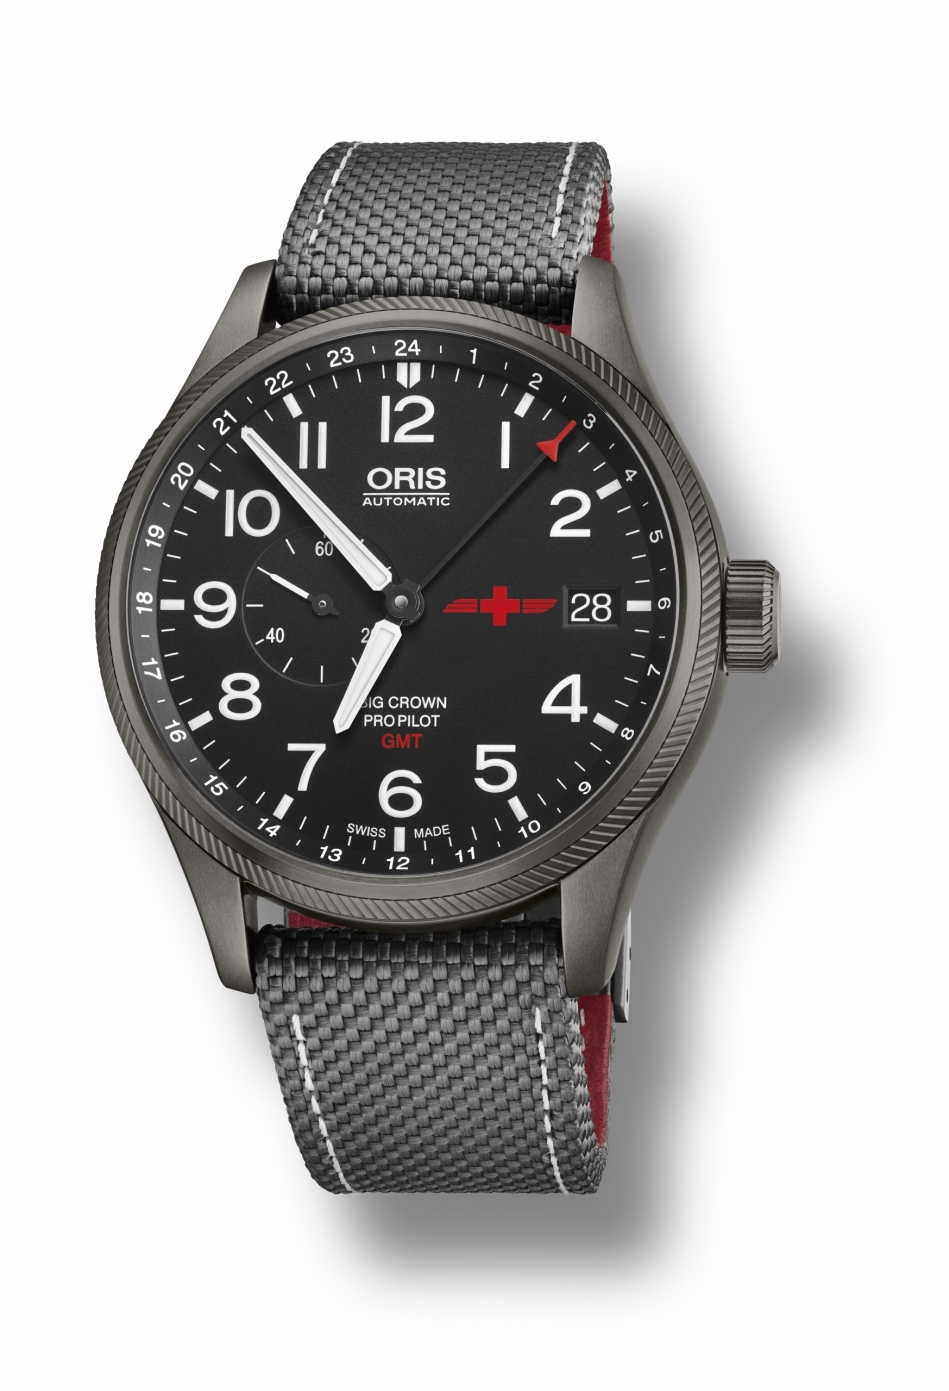 01 748 7710 4284-Set - Oris GMT Rega Limited Edition_HighRes_7507.jpg